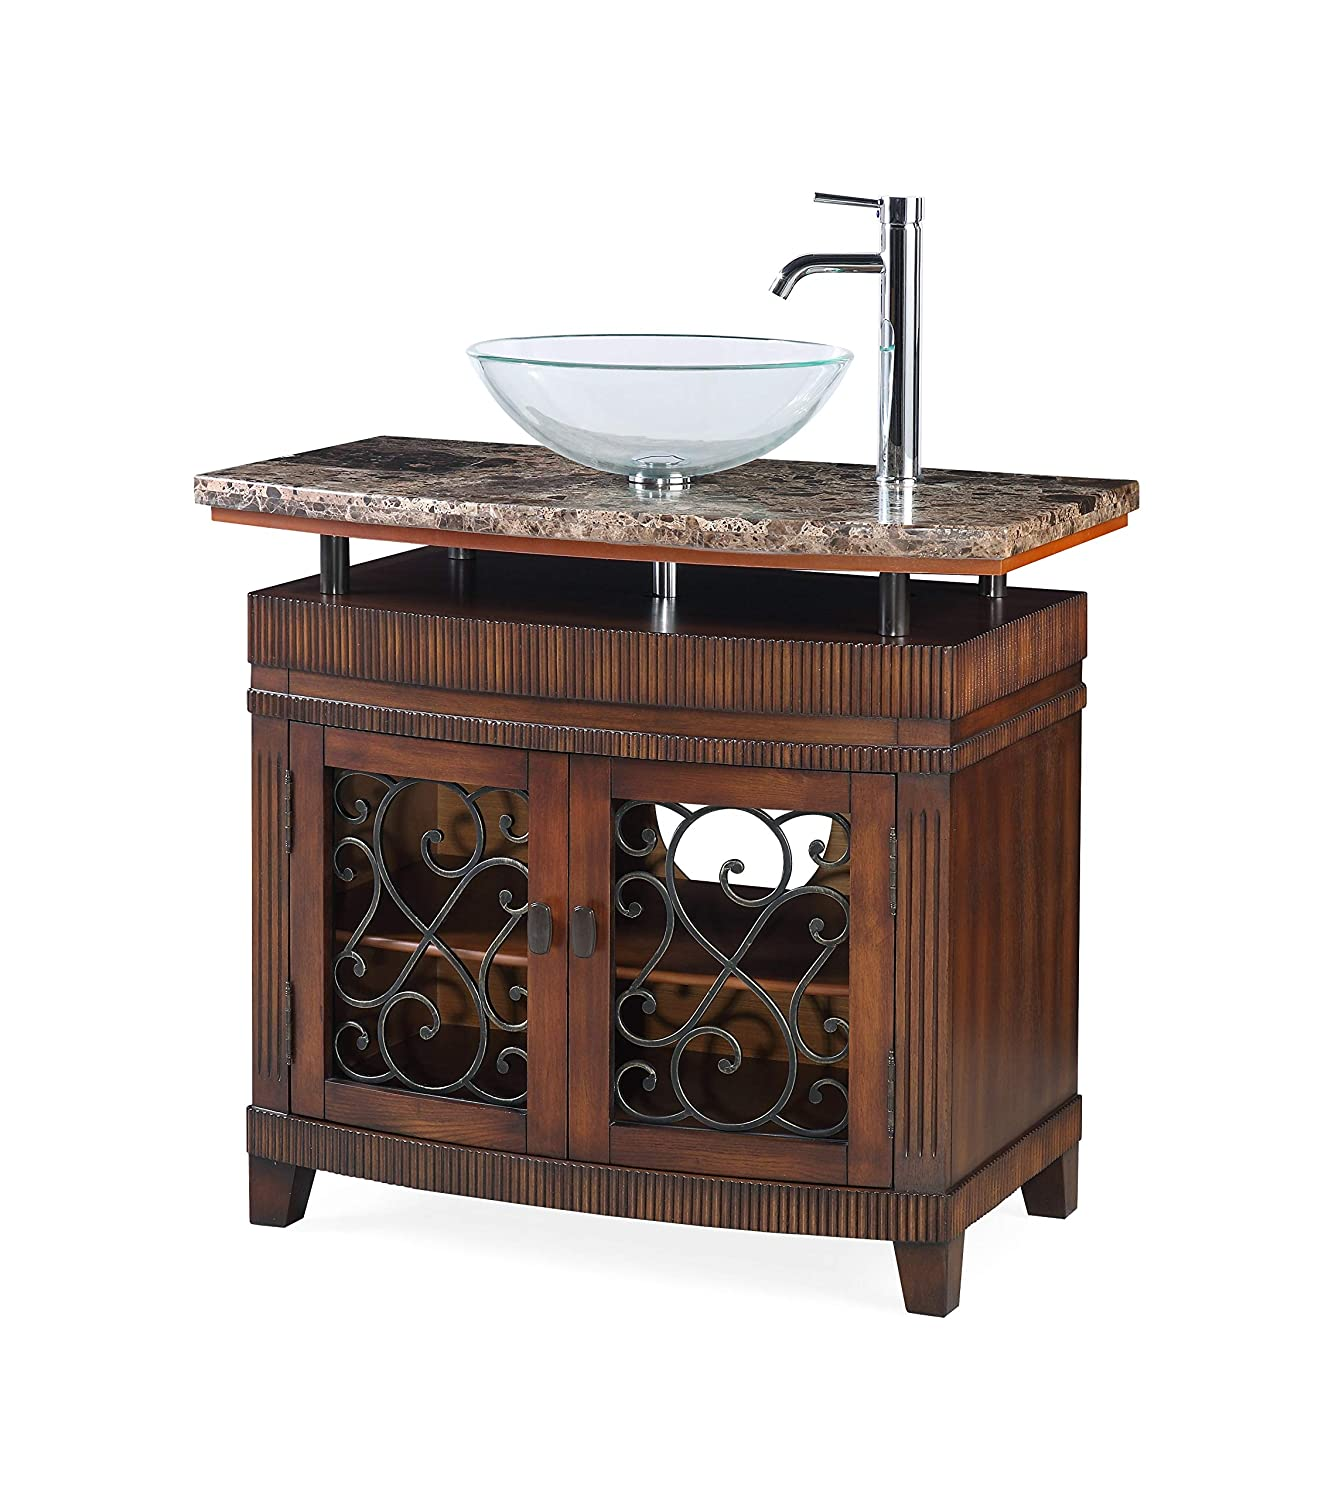 36 Benton Collection Vessel Sink Artturi Bathroom Vanity – Faucet vessel all inclusive Q226BN